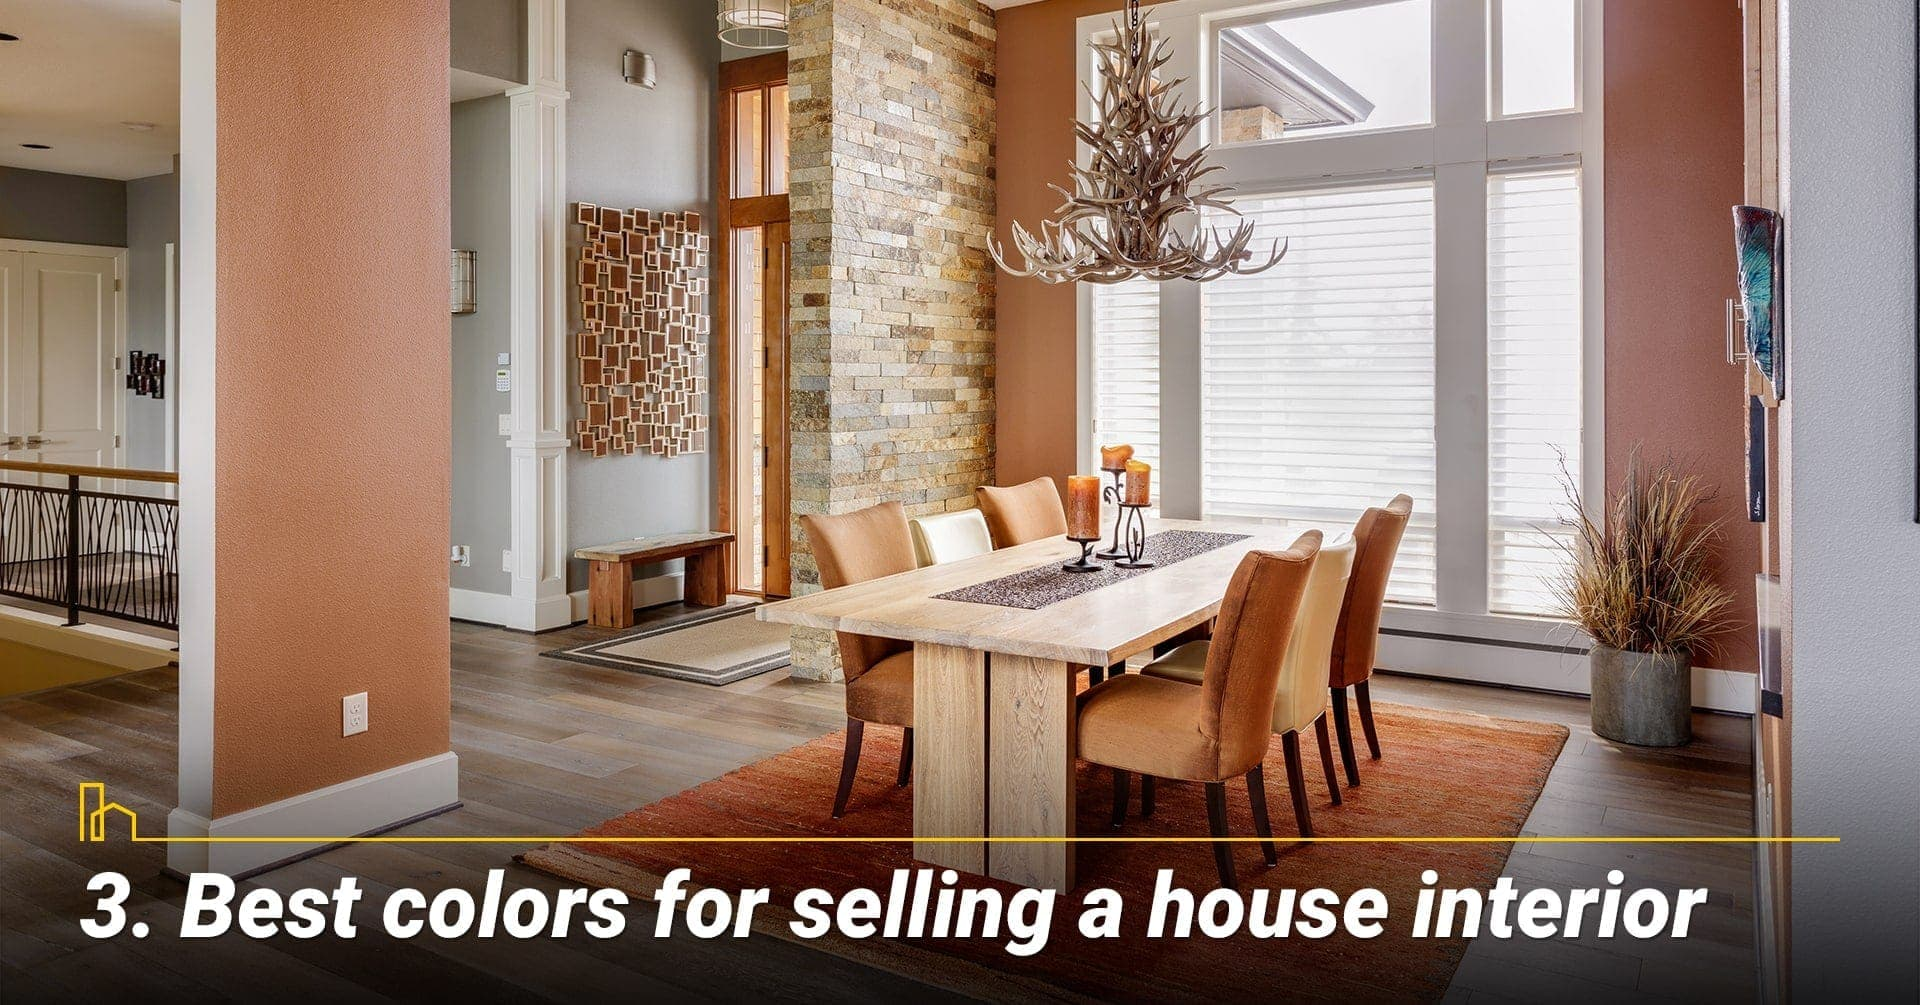 Best colors for selling a house interior